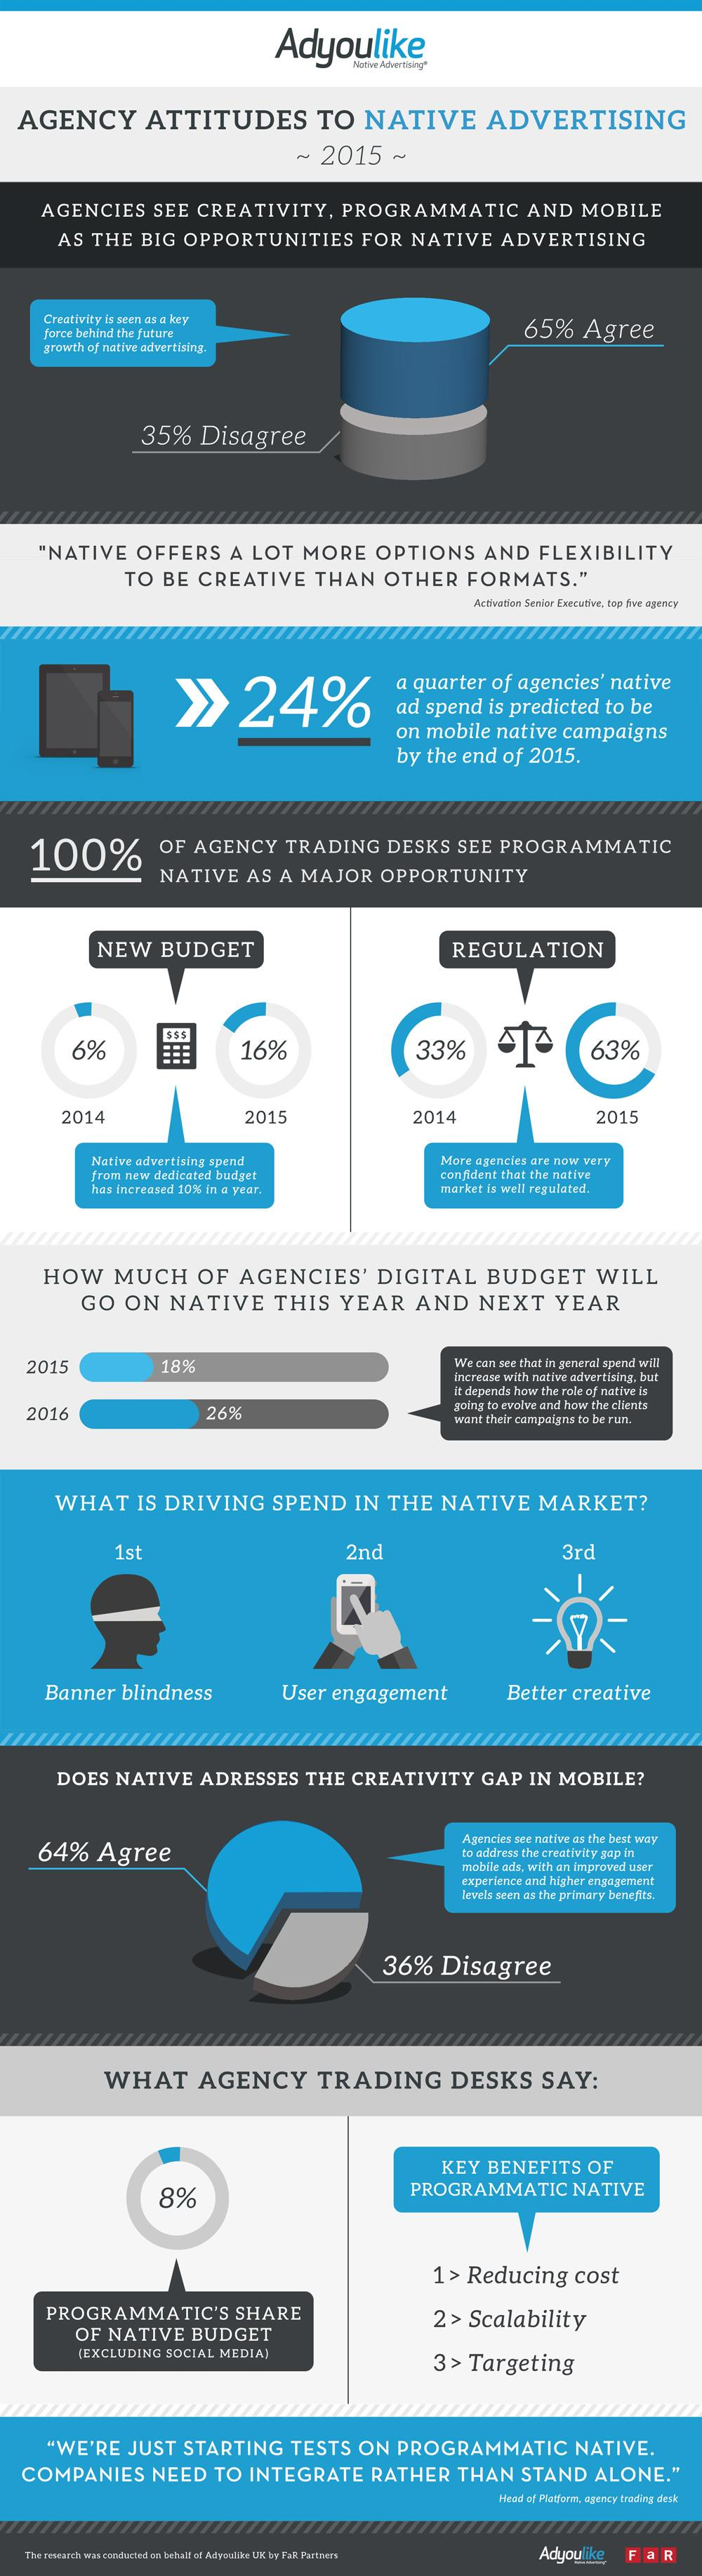 agencies see creativity  programmatic and mobile as the